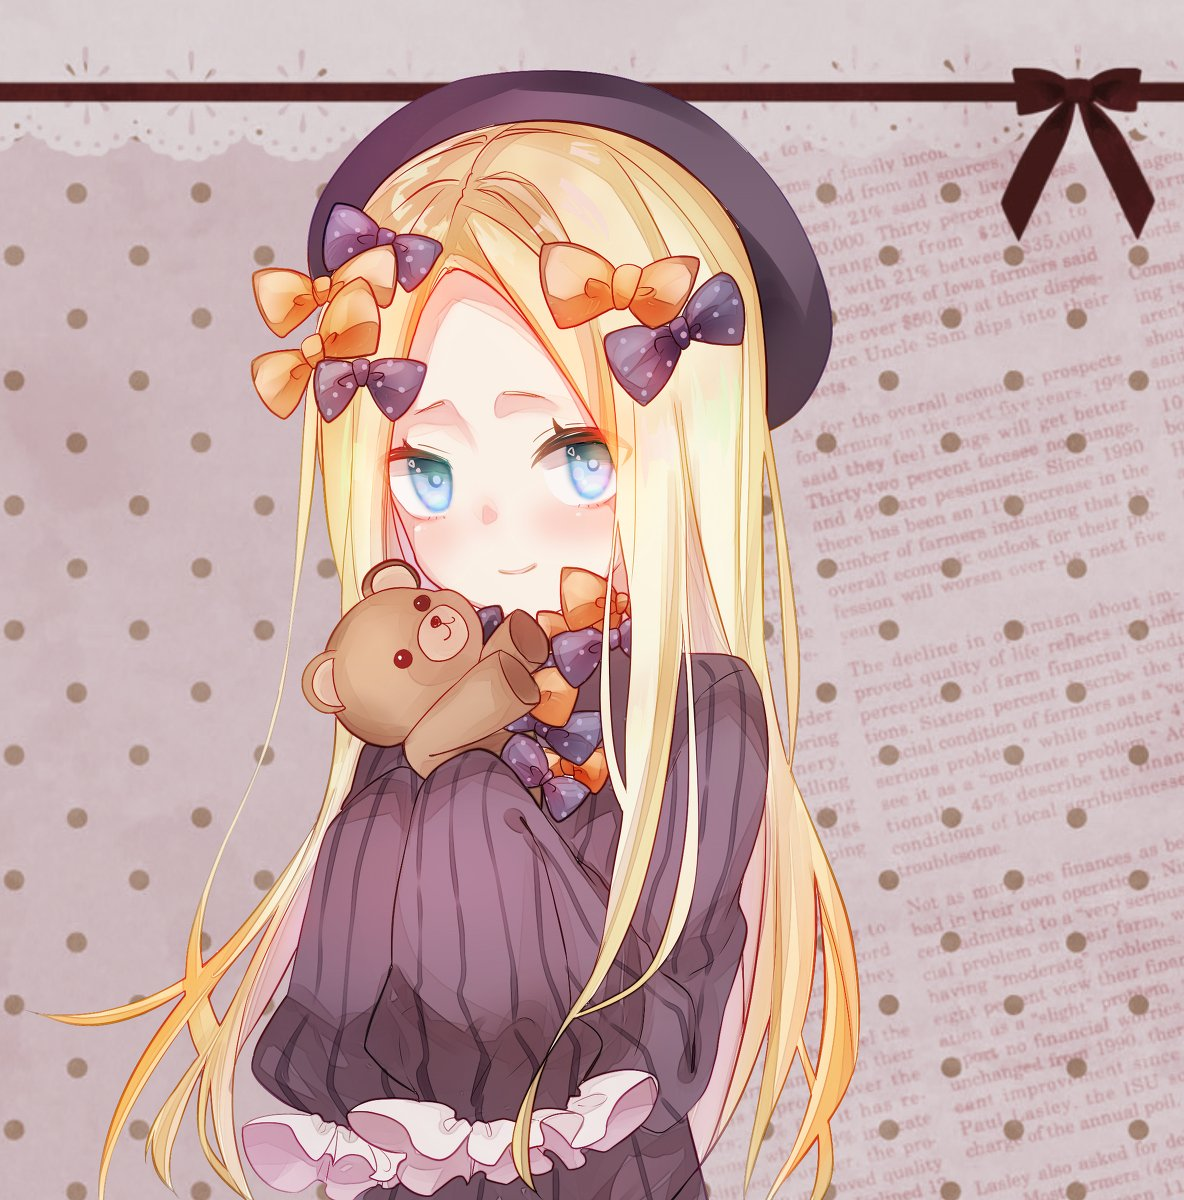 1girl abigail_williams_(fate/grand_order) bangs black_bow black_dress black_headwear blonde_hair blue_eyes blush bow breasts canary999 closed_mouth dress fate/grand_order fate_(series) forehead hair_bow hat highres holding holding_stuffed_animal long_hair looking_at_viewer multiple_bows orange_bow parted_bangs polka_dot polka_dot_background polka_dot_bow ribbed_dress sleeves_past_fingers sleeves_past_wrists small_breasts smile stuffed_animal stuffed_toy teddy_bear